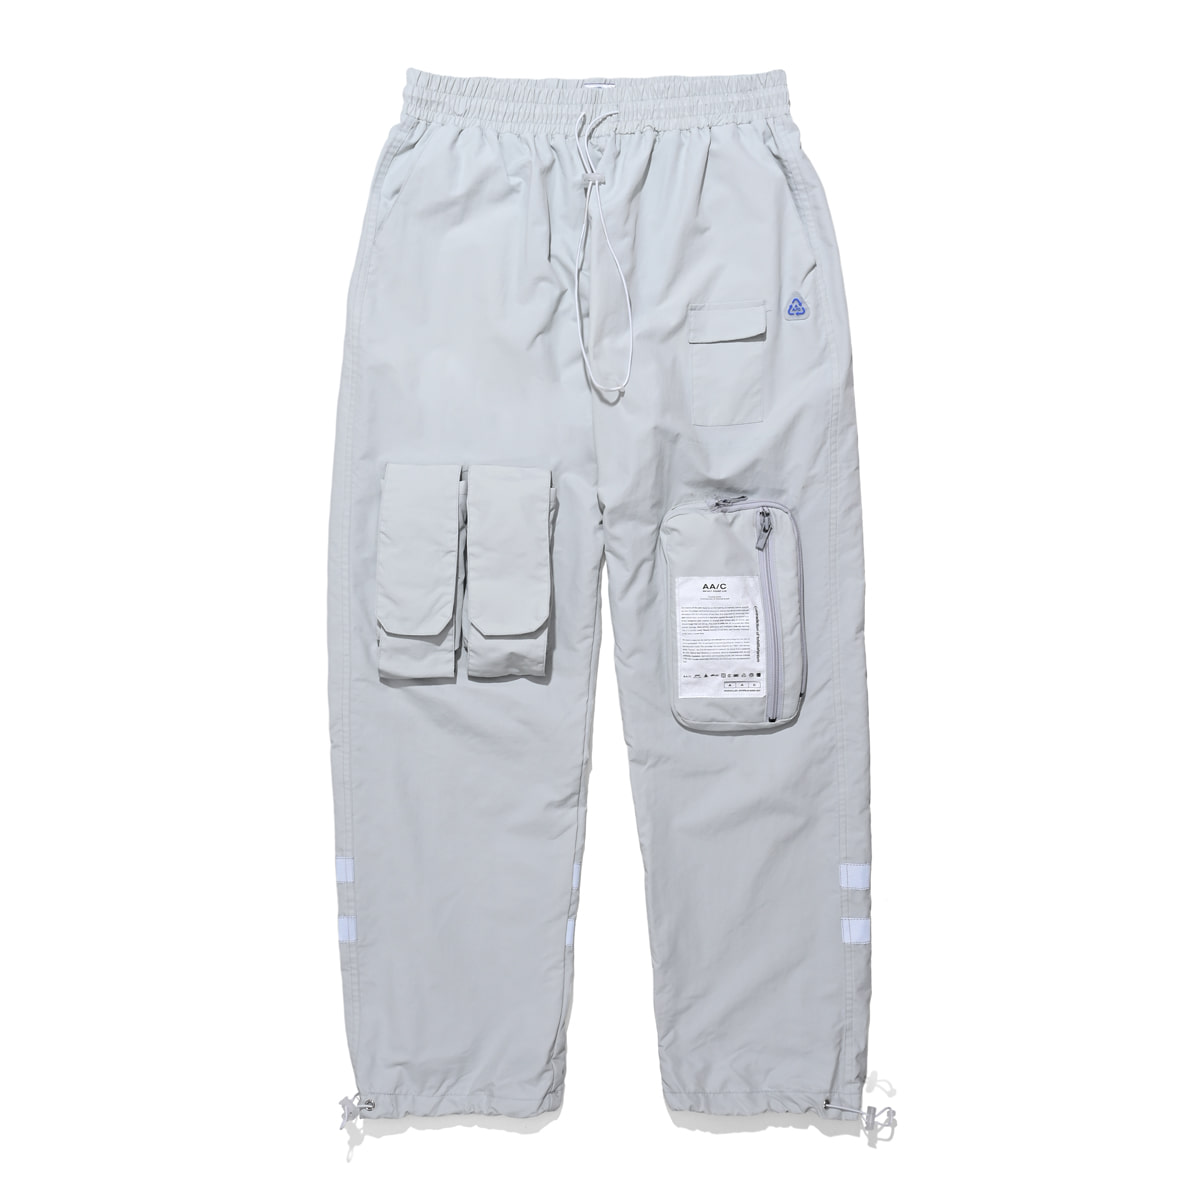 8 pocket smock pants (gray)